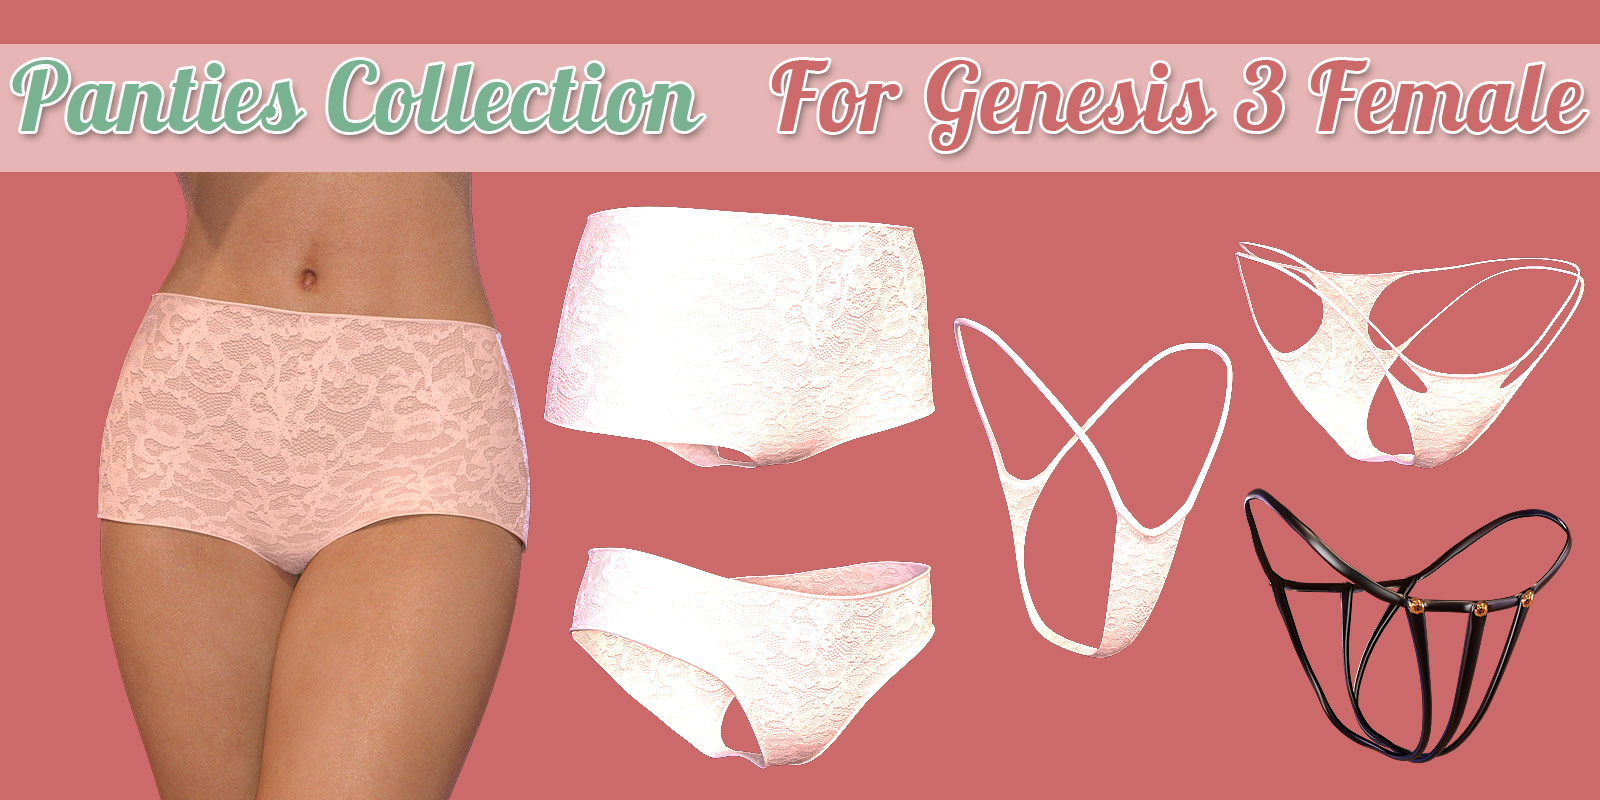 Panties Collection for G3 female(s) by powerage